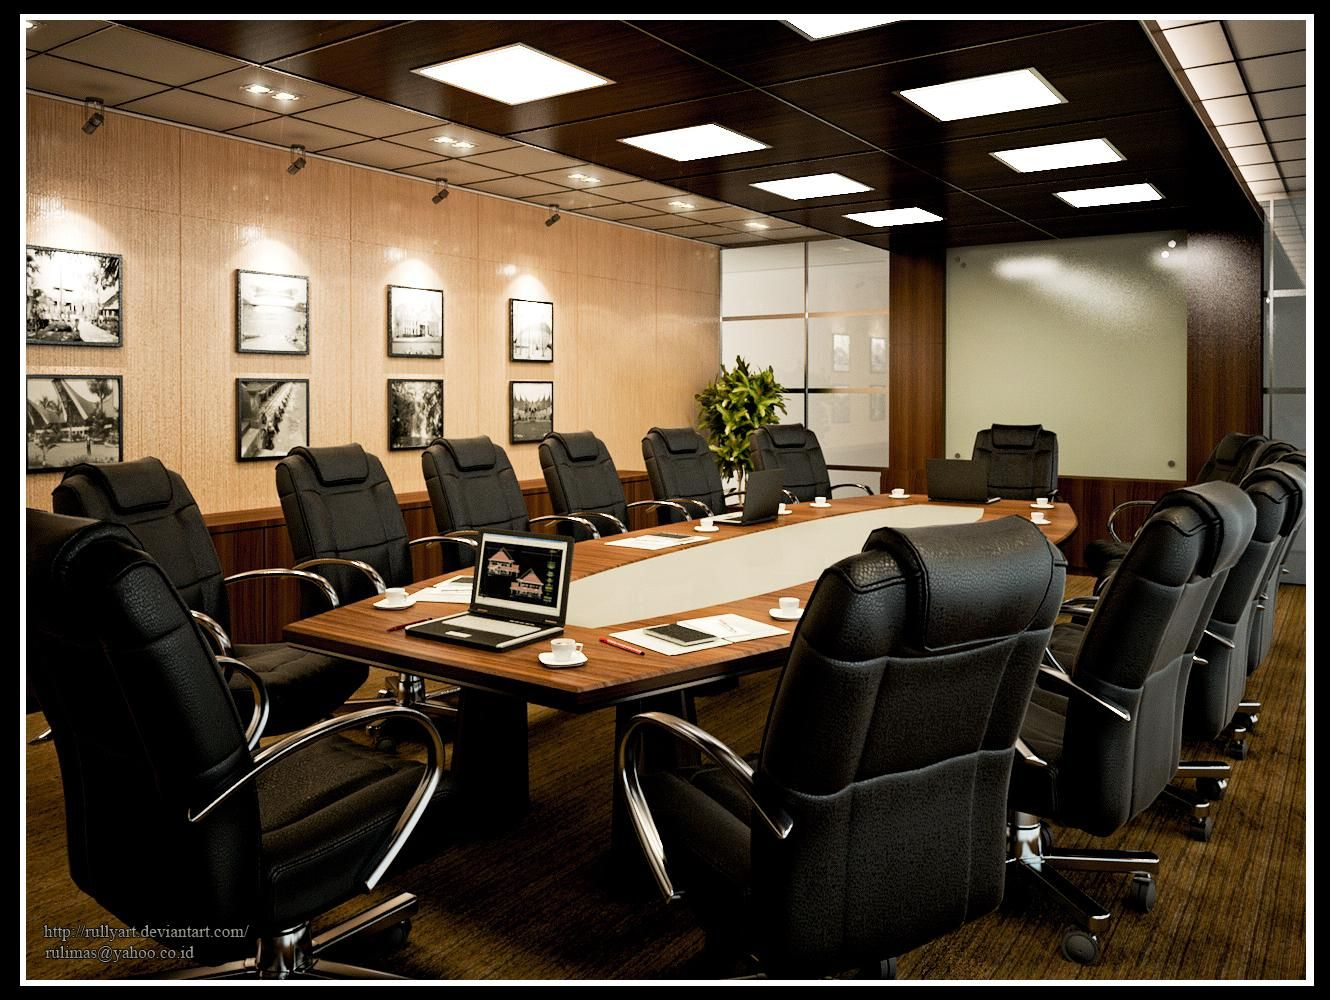 Conference Room Design Ideas attractive modern meeting room office interior design white office chair and orange wooden meeting table Find This Pin And More On Ideas For The House Gorgeous Home Office Meeting Room Designs